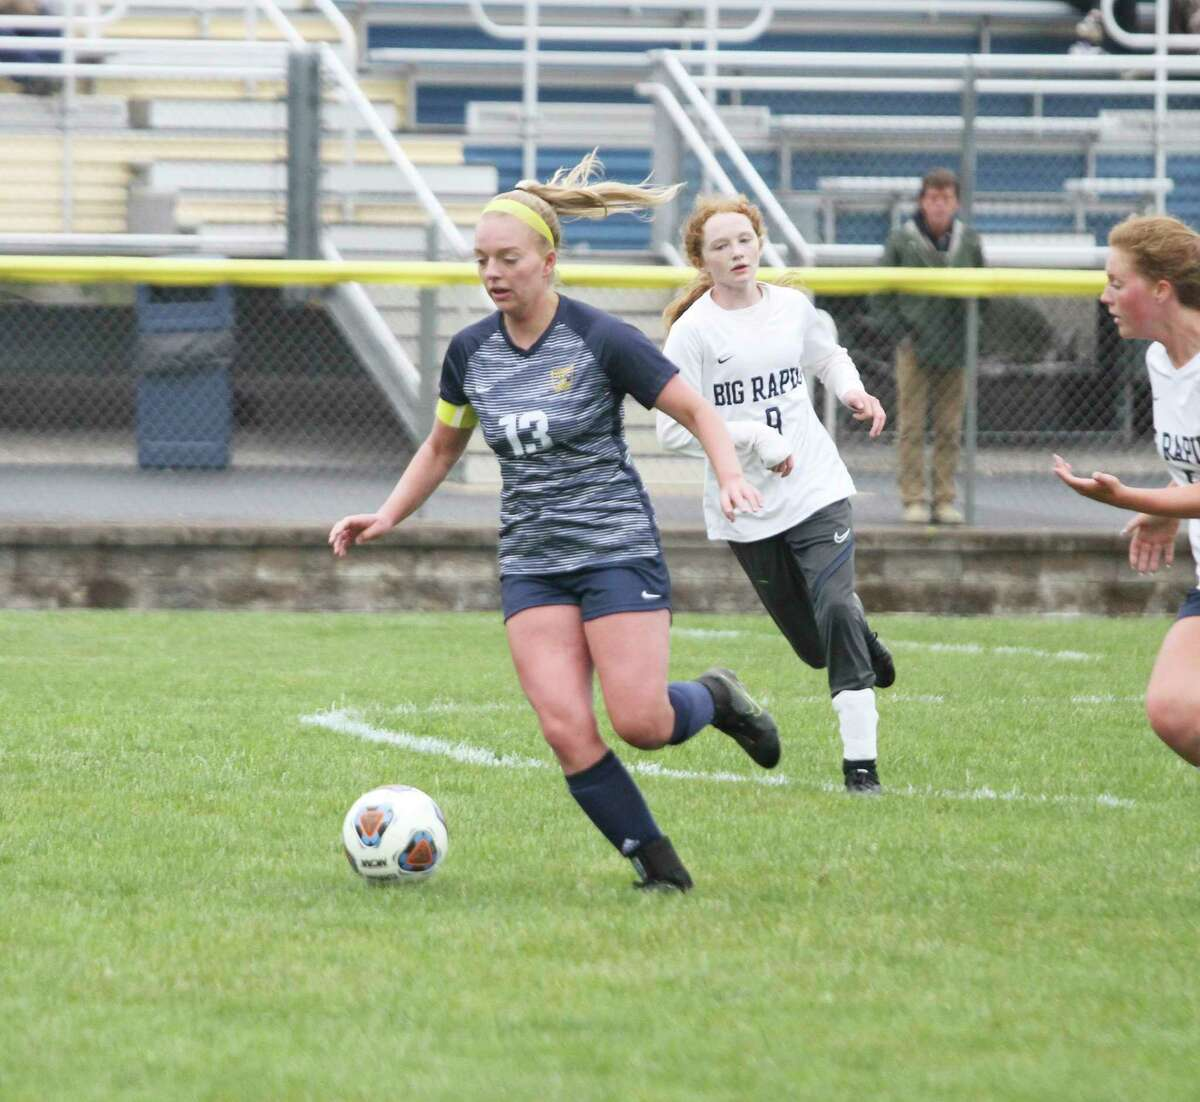 Olivia Smith earned second team all-conference honors while playing midfielder for Manistee. (News Advocate file photo)